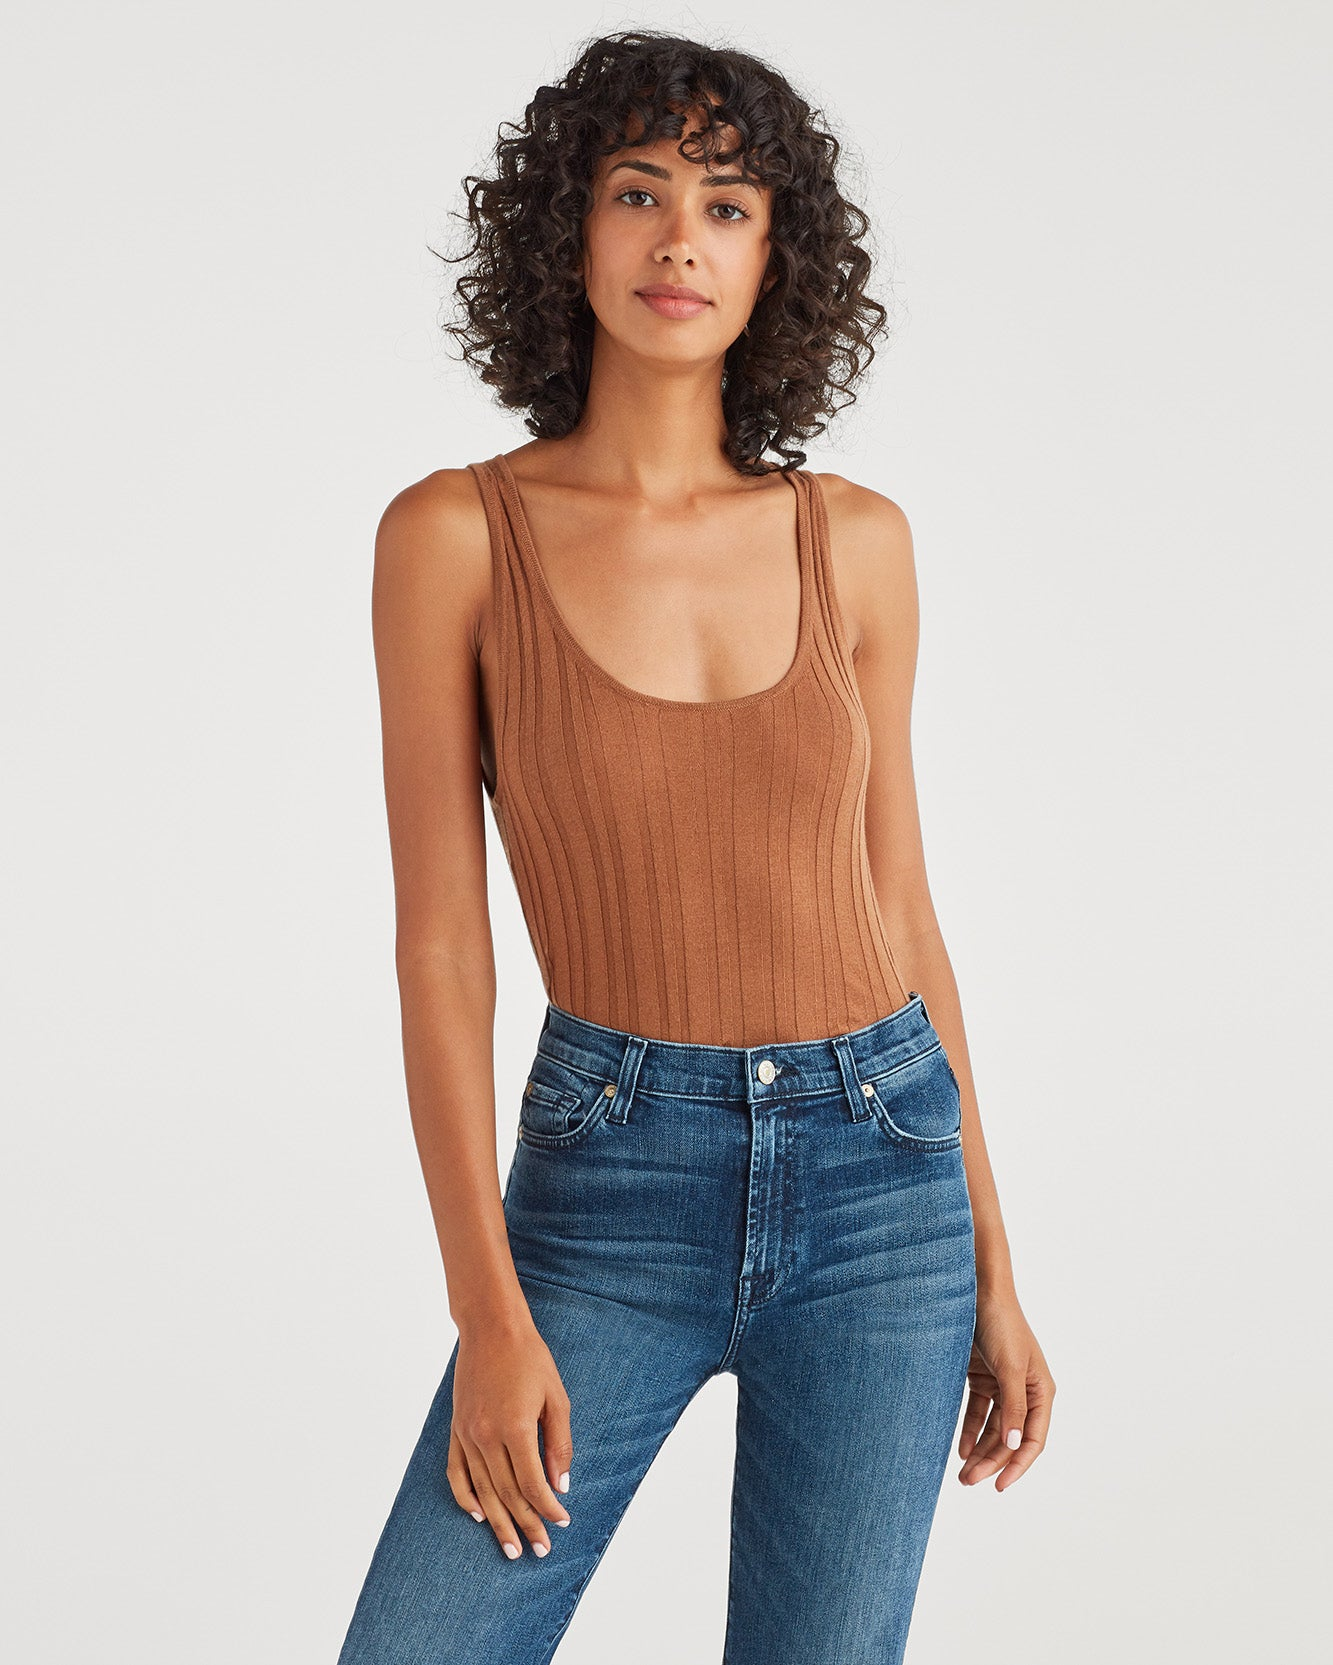 Image of Cashmere Blend Racer Back Tank in Penny